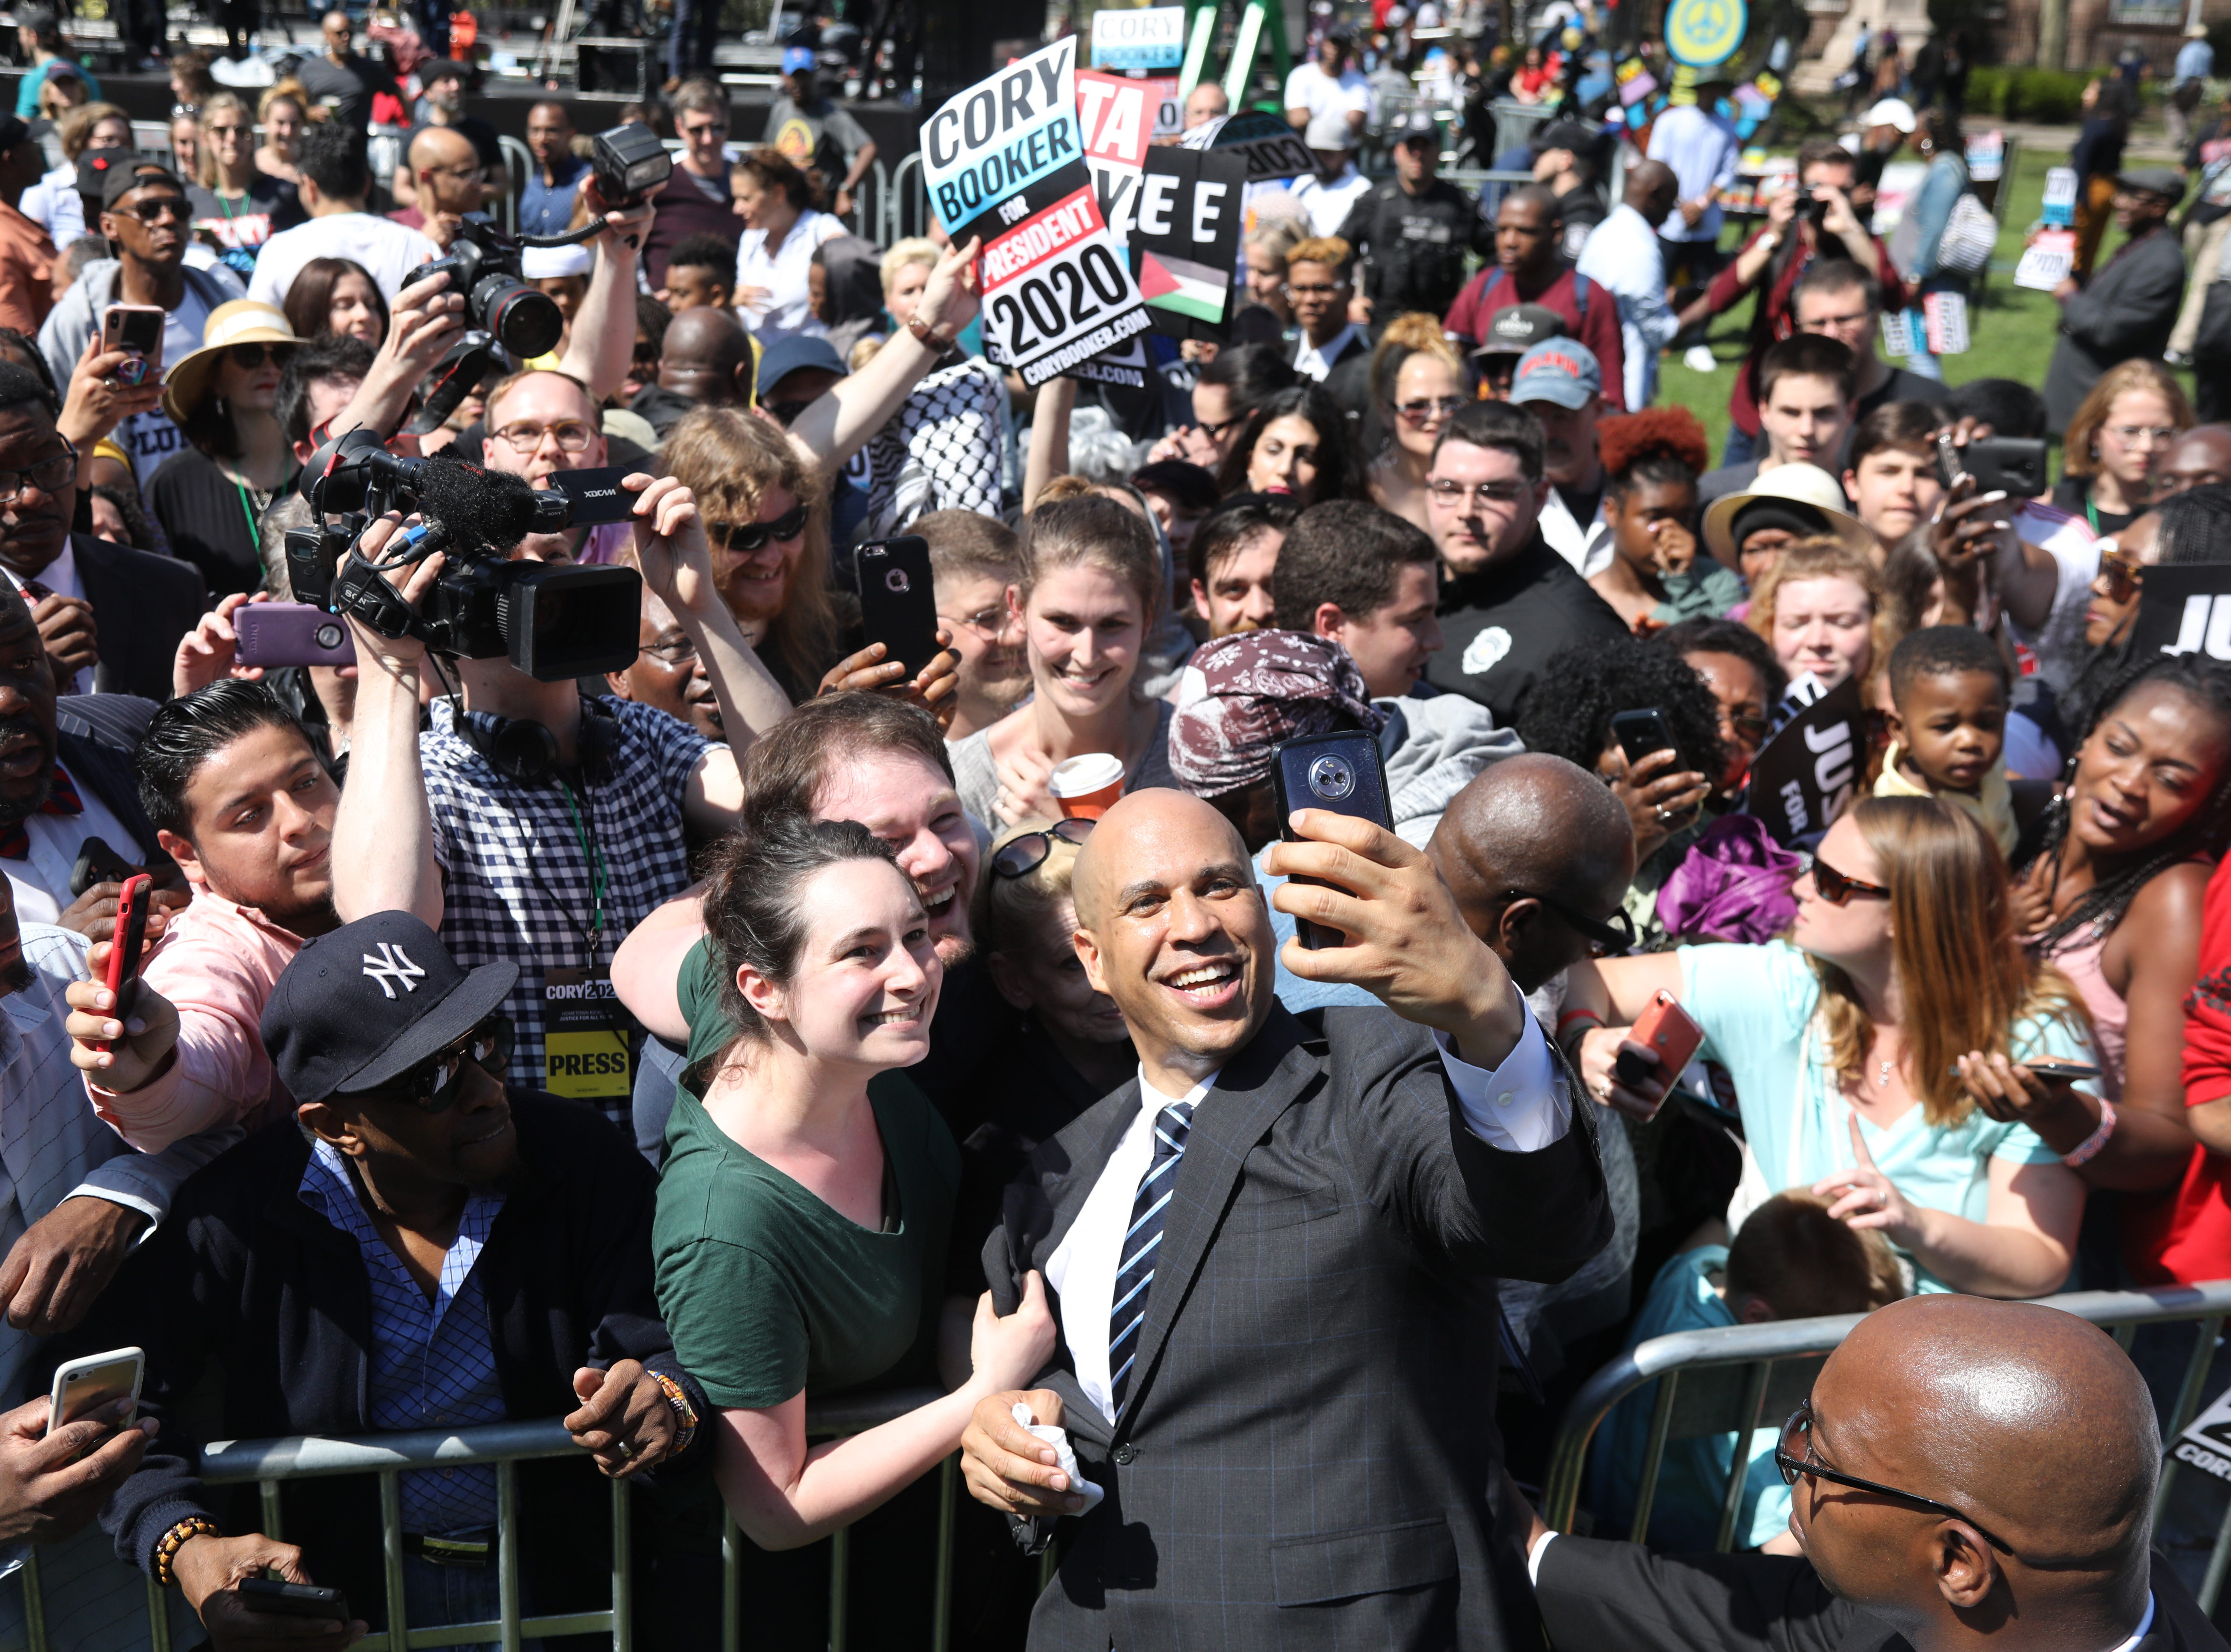 Senator Cory Booker works the rope line, shaking hands and taking selfies, at a rally to kick off the Cory Booker campaign for president that was held at Military Park in Newark on April 13, 2019.